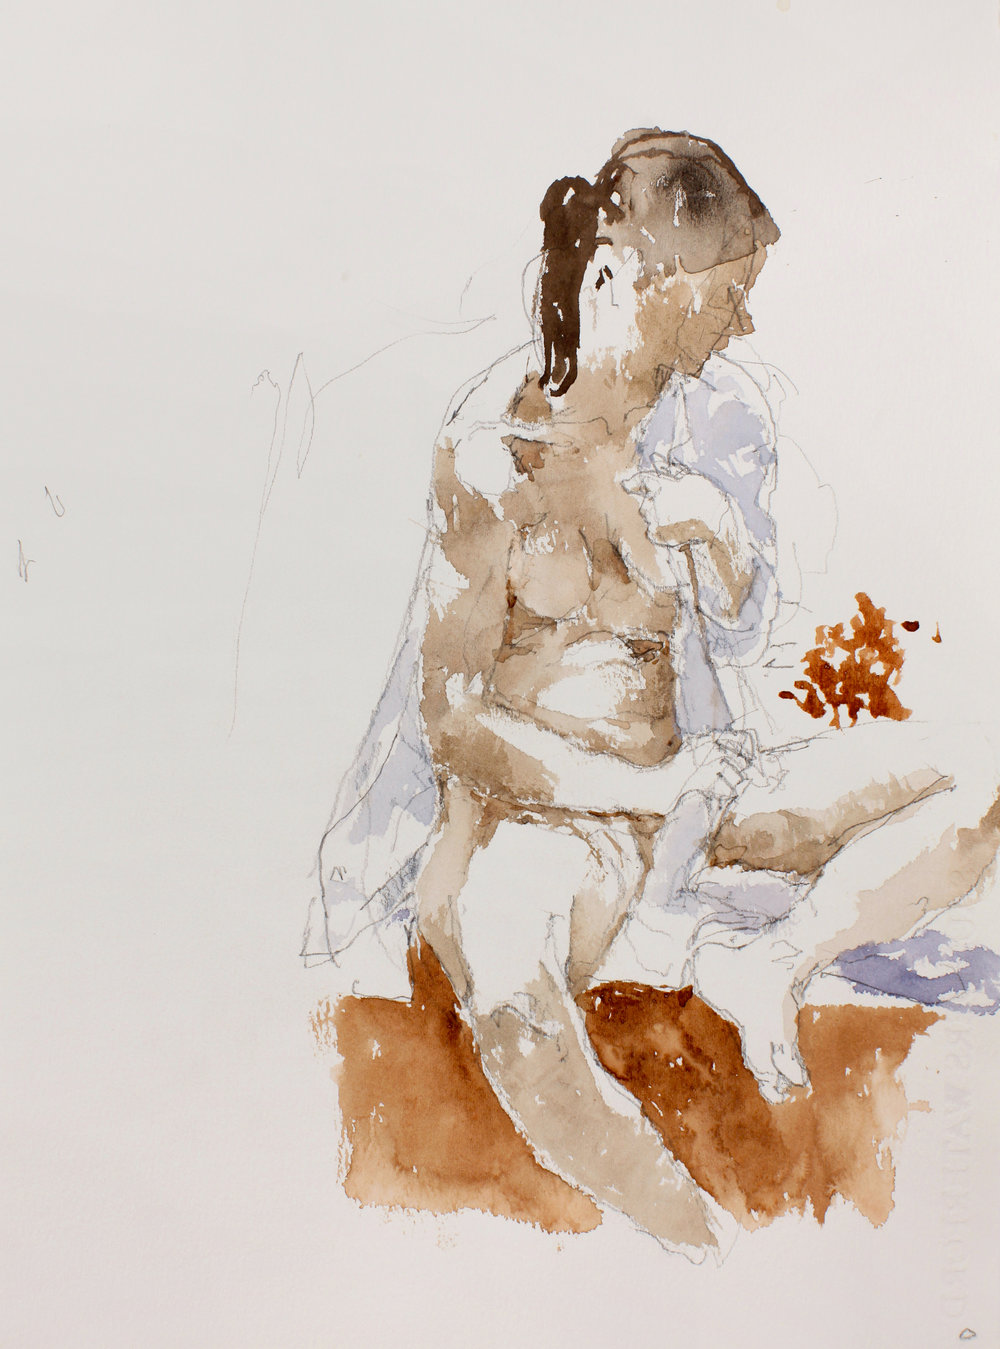 2007_Seated_Nude_Adjusting_Shirt_watercolour_and_pencil_on_paper_15x11in_WPF111.jpg